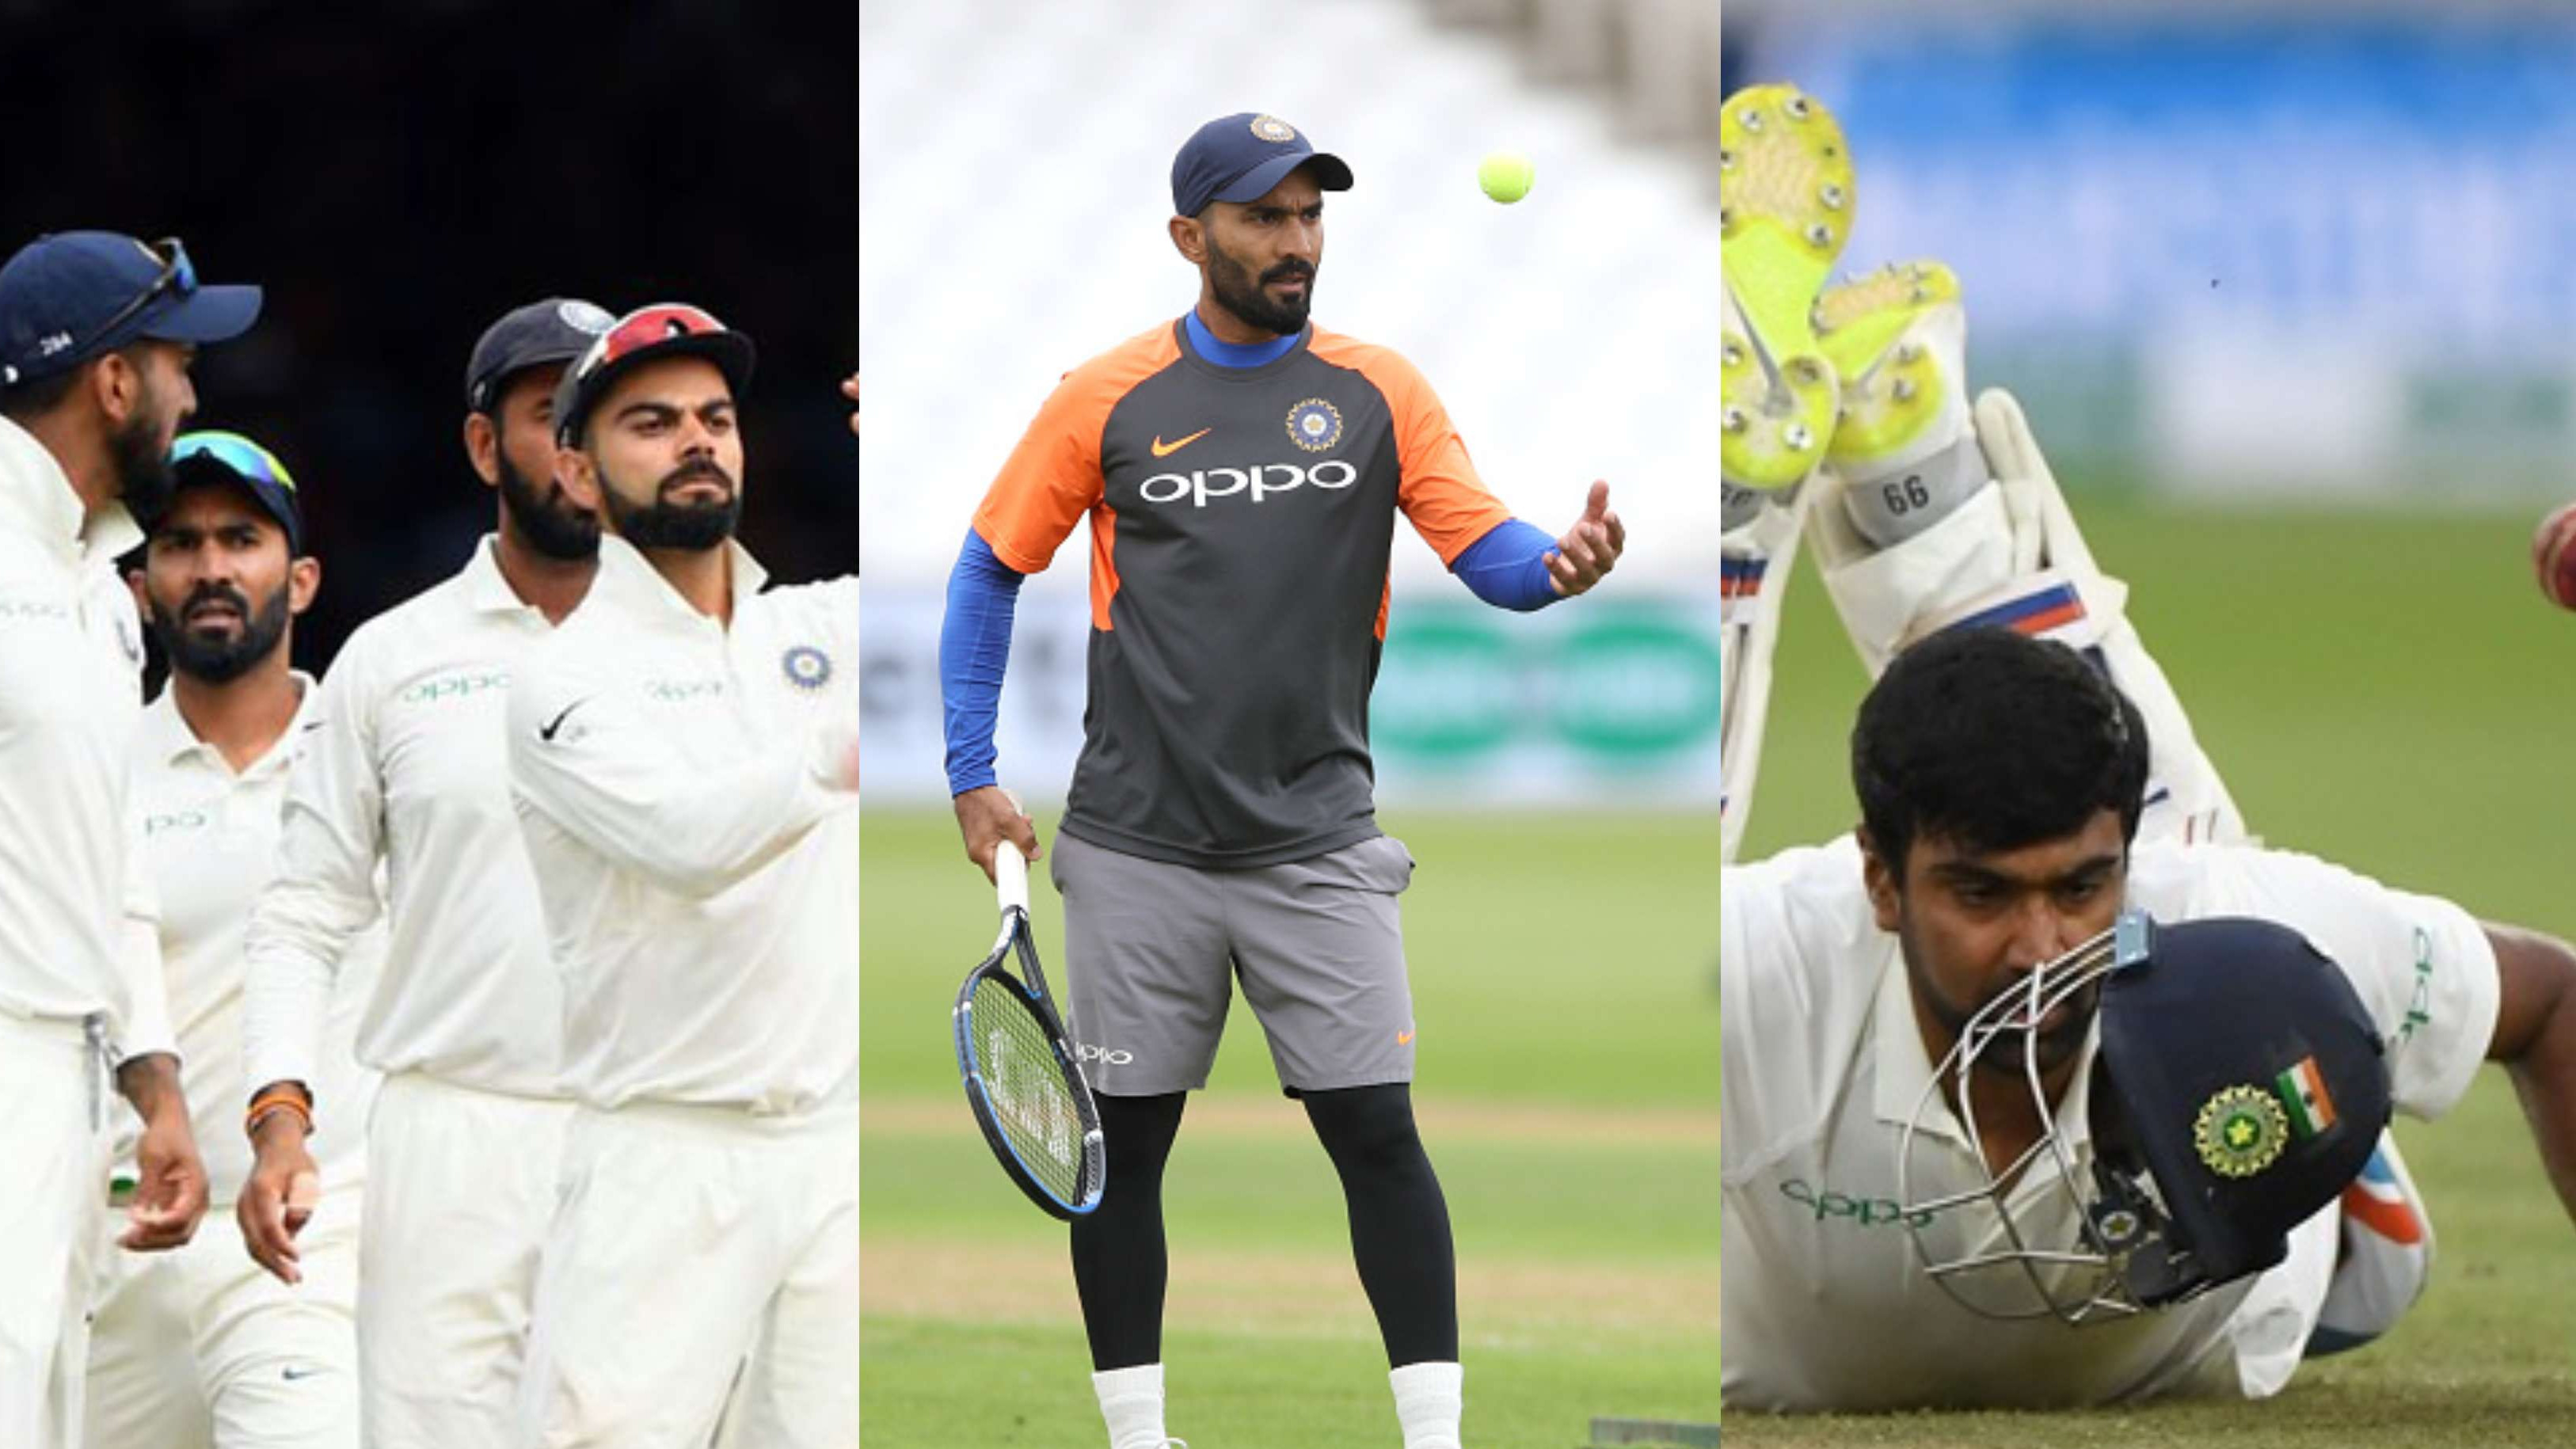 ENG v IND 2018: Injury scare for Team India before the 3rd Test at Trent Bridge